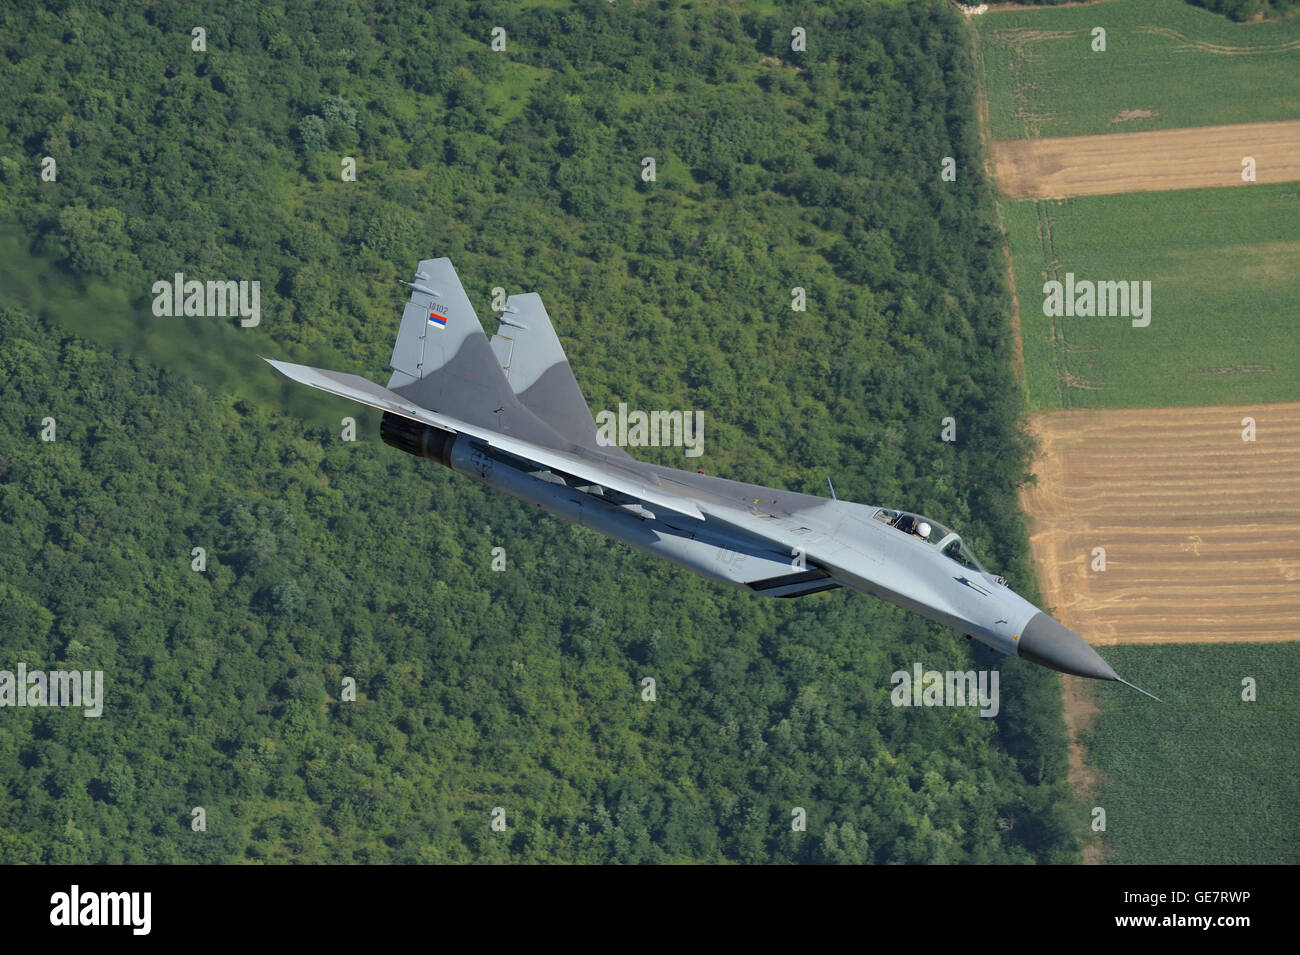 Serbian Air Force Mikoyan-Gurevich MiG-29 (NATO code: Fulcrum) multi-role fighter jet interceptor aircraft in flight Stock Photo